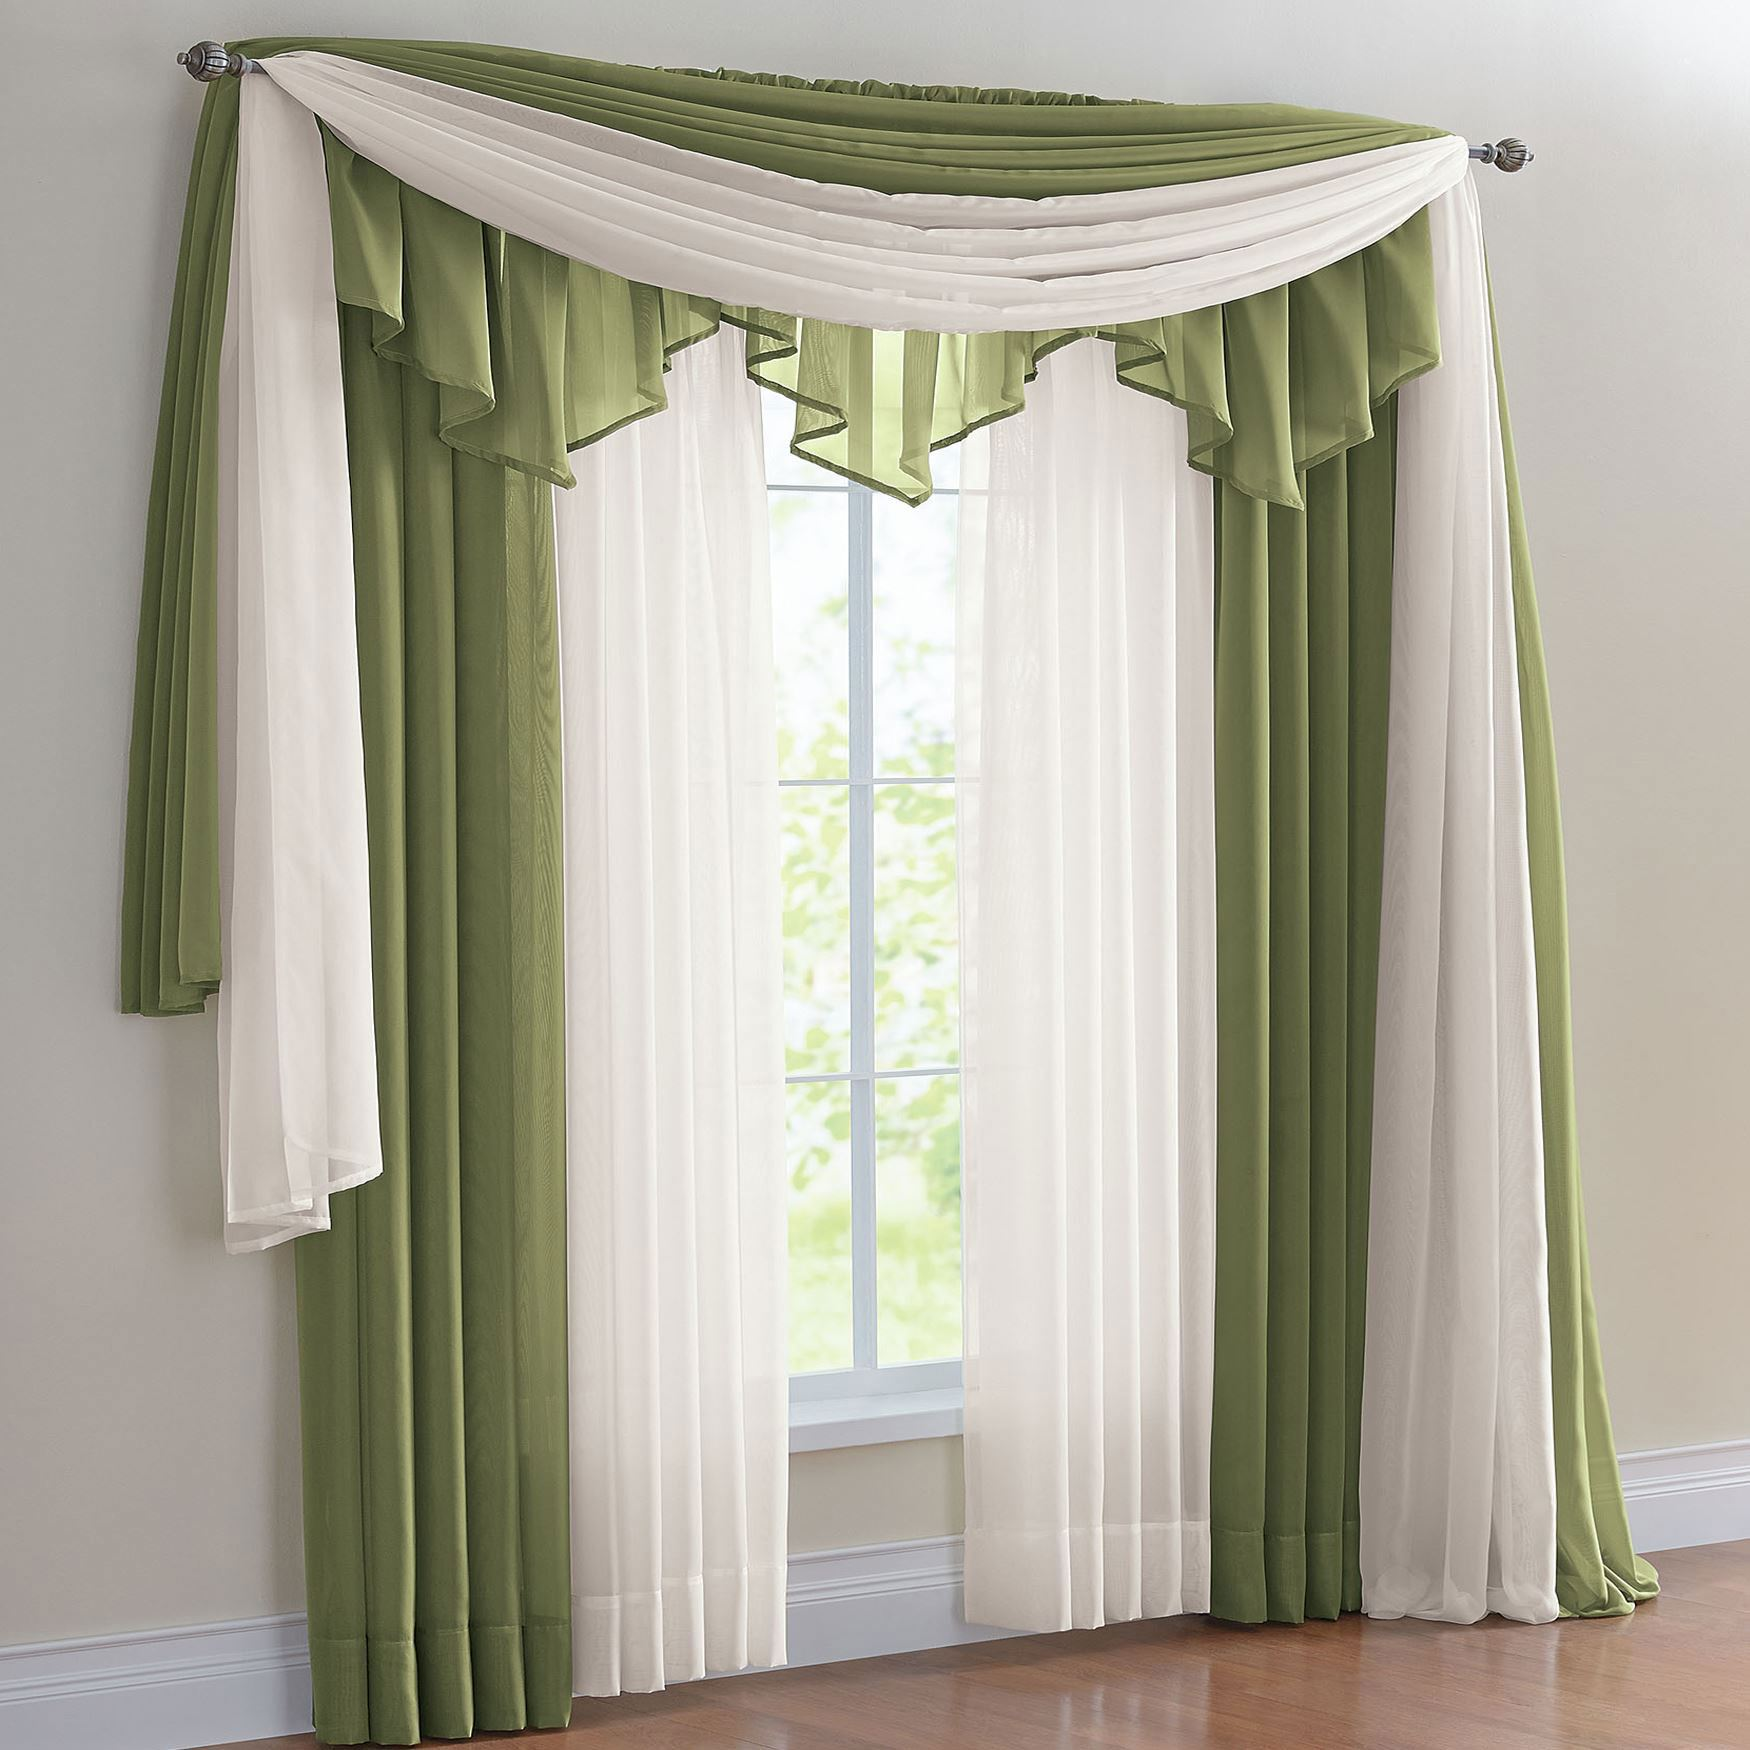 drapes and curtains bh studio® sheer voile ascot